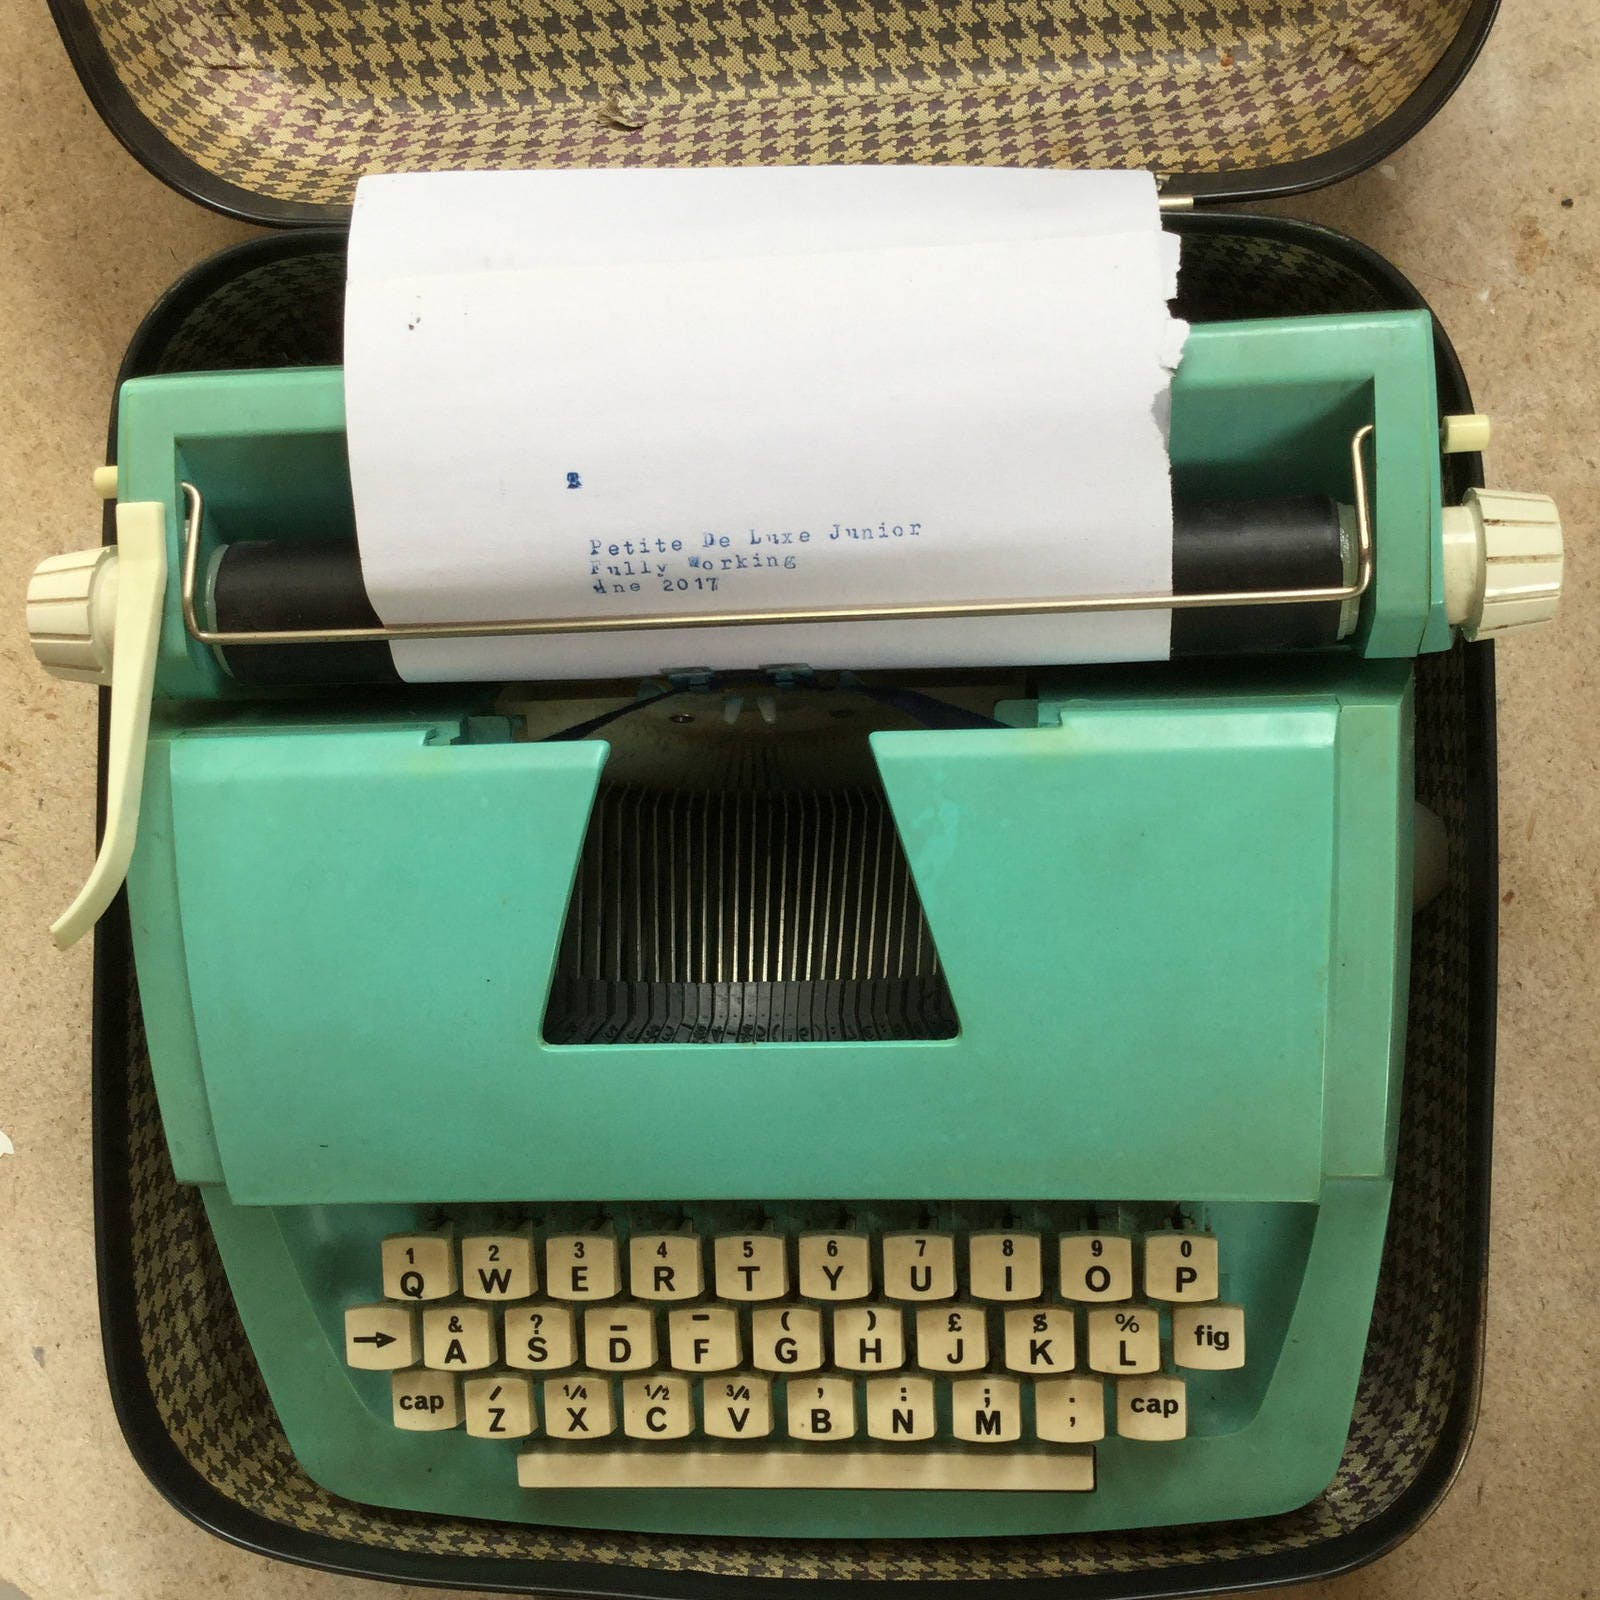 1970s Petite Junior De Luxe Typewriter and Carry Case Made in England for Mettoy Playcraft LTD